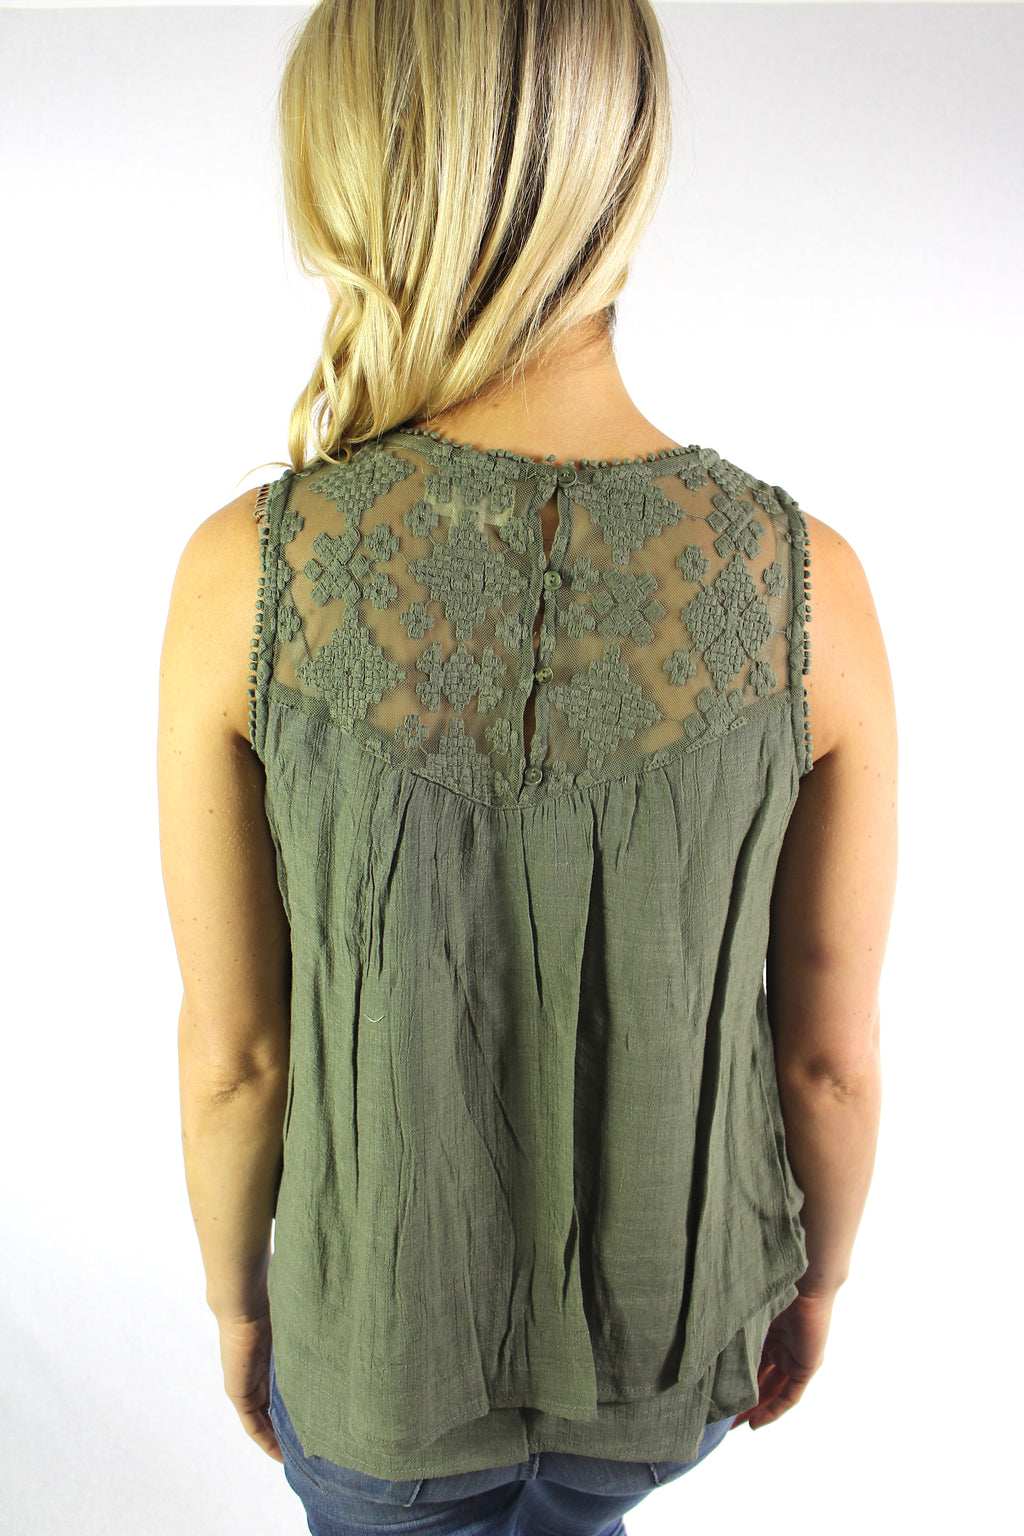 Women's Sleeveless Top with Lace Detail